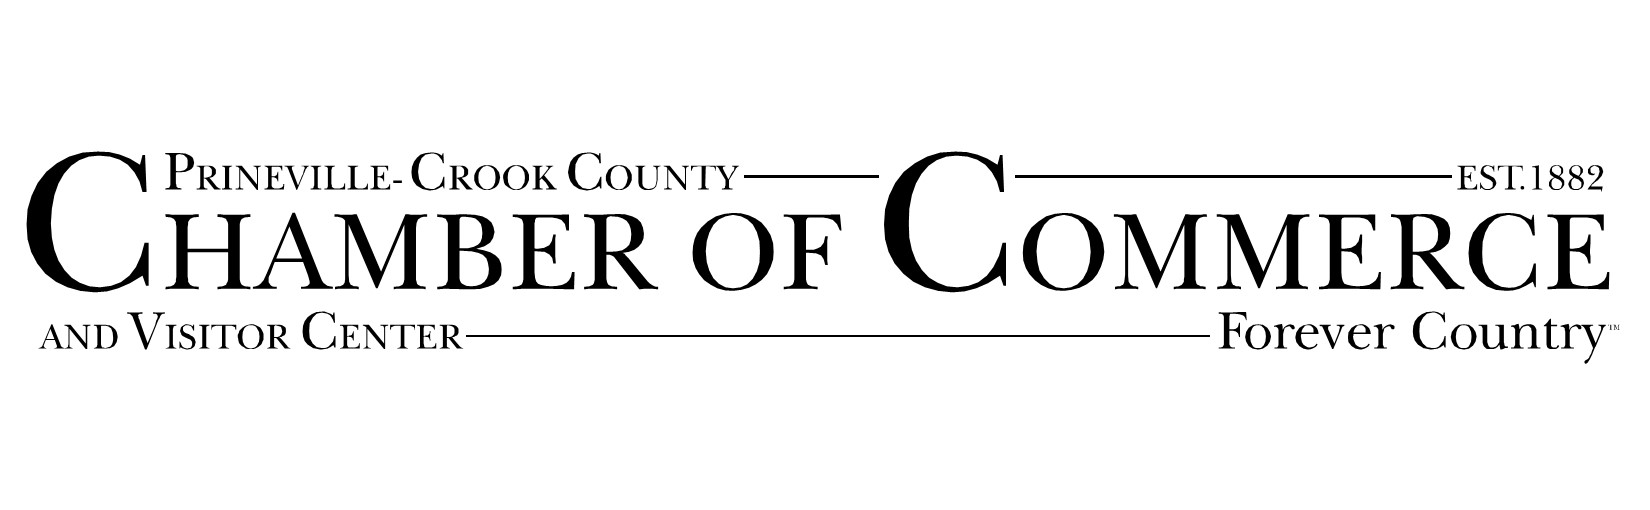 Prineville Crook County Chamber of Commerce